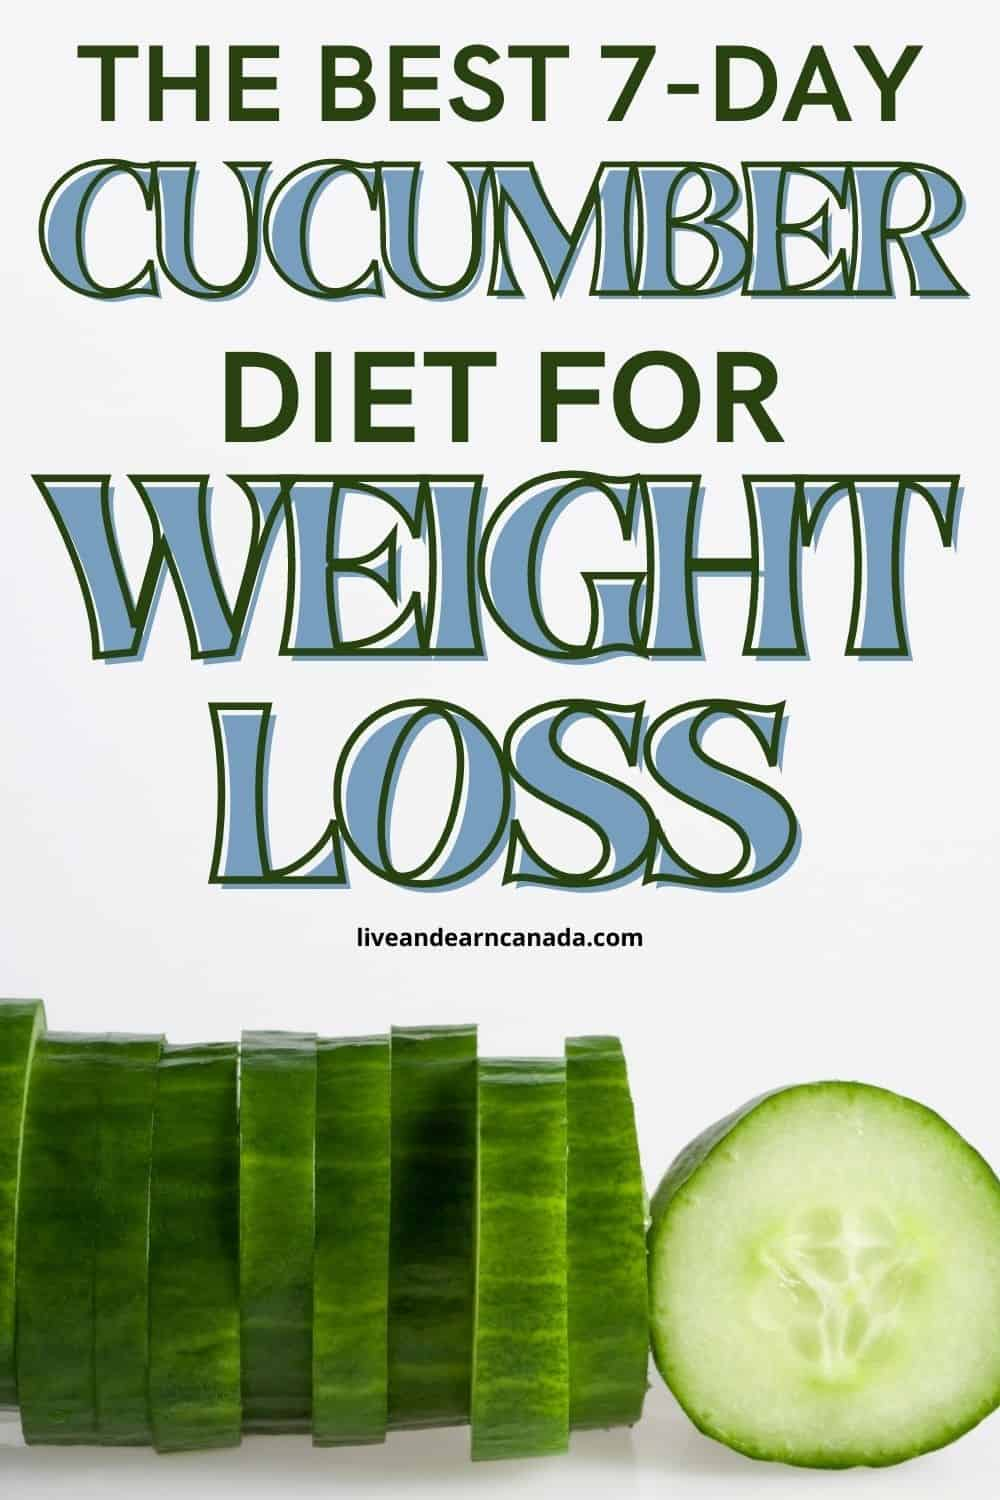 Cucumber Diet Lose 15 Pounds In 7 Days! Do you like cucumbers? That's good for you! A cucumber is a tasty, low-calorie vegetable that can help you slim down easily. One average cucumber contains twenty calories, which is very good for weight loss. Read one fast diet you can use to drop those extra pounds 7 days. In fact, it's the cucumber diet together with its meal plan.